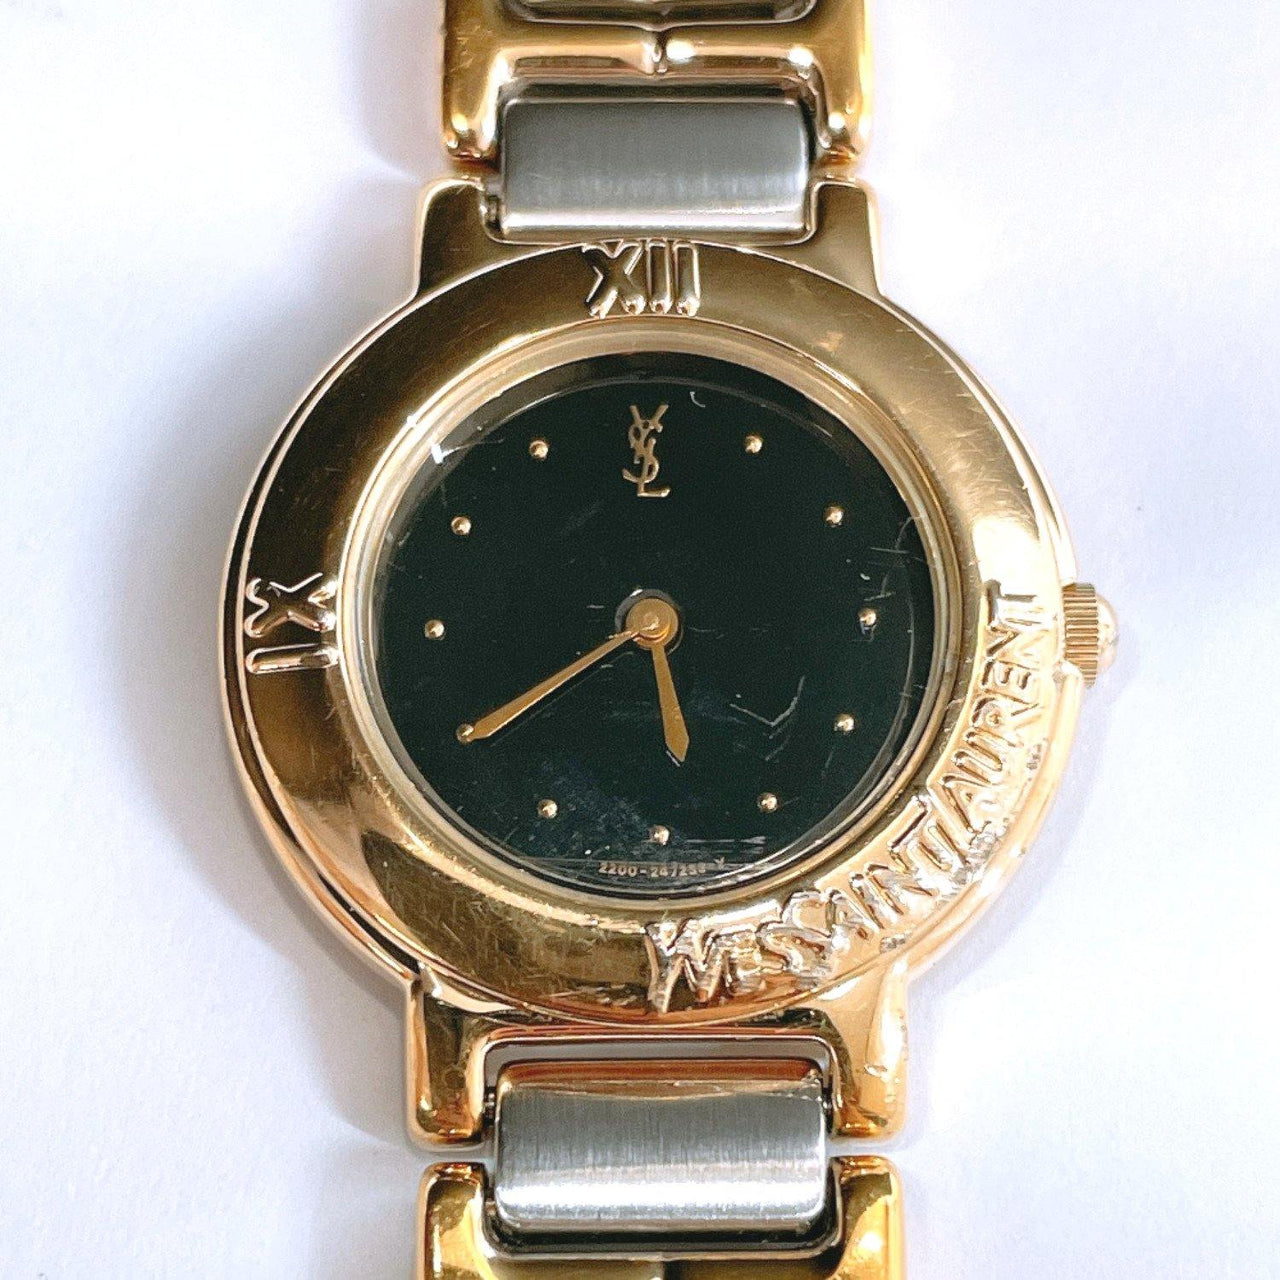 YVES SAINT LAURENT Watches 2200-229789 quartz Stainless Steel Silver Women Used - JP-BRANDS.com